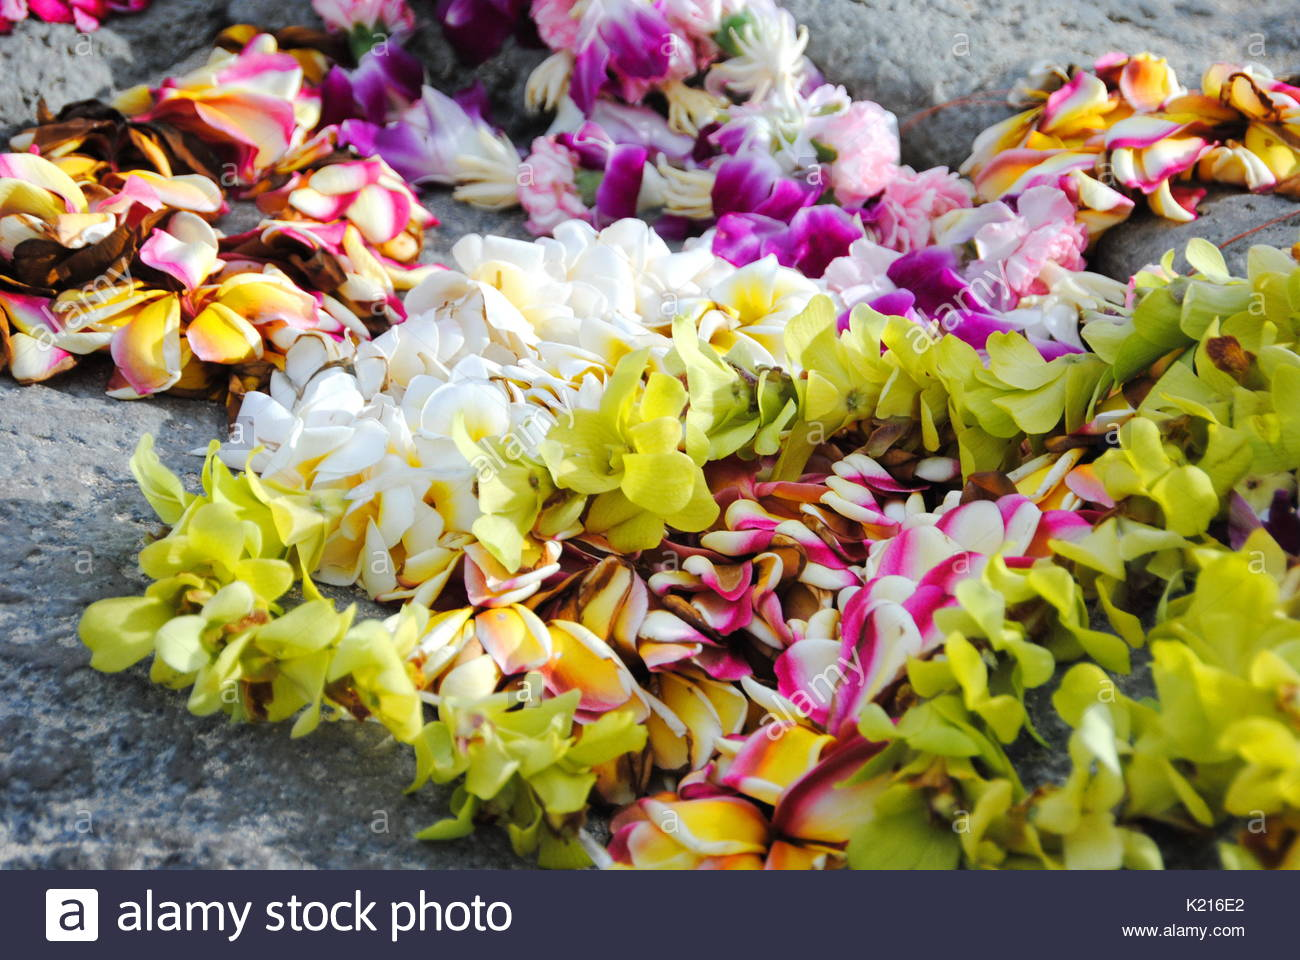 Hawaiian lei stock photos hawaiian lei stock images alamy hawaiian leis on a rock stock image izmirmasajfo